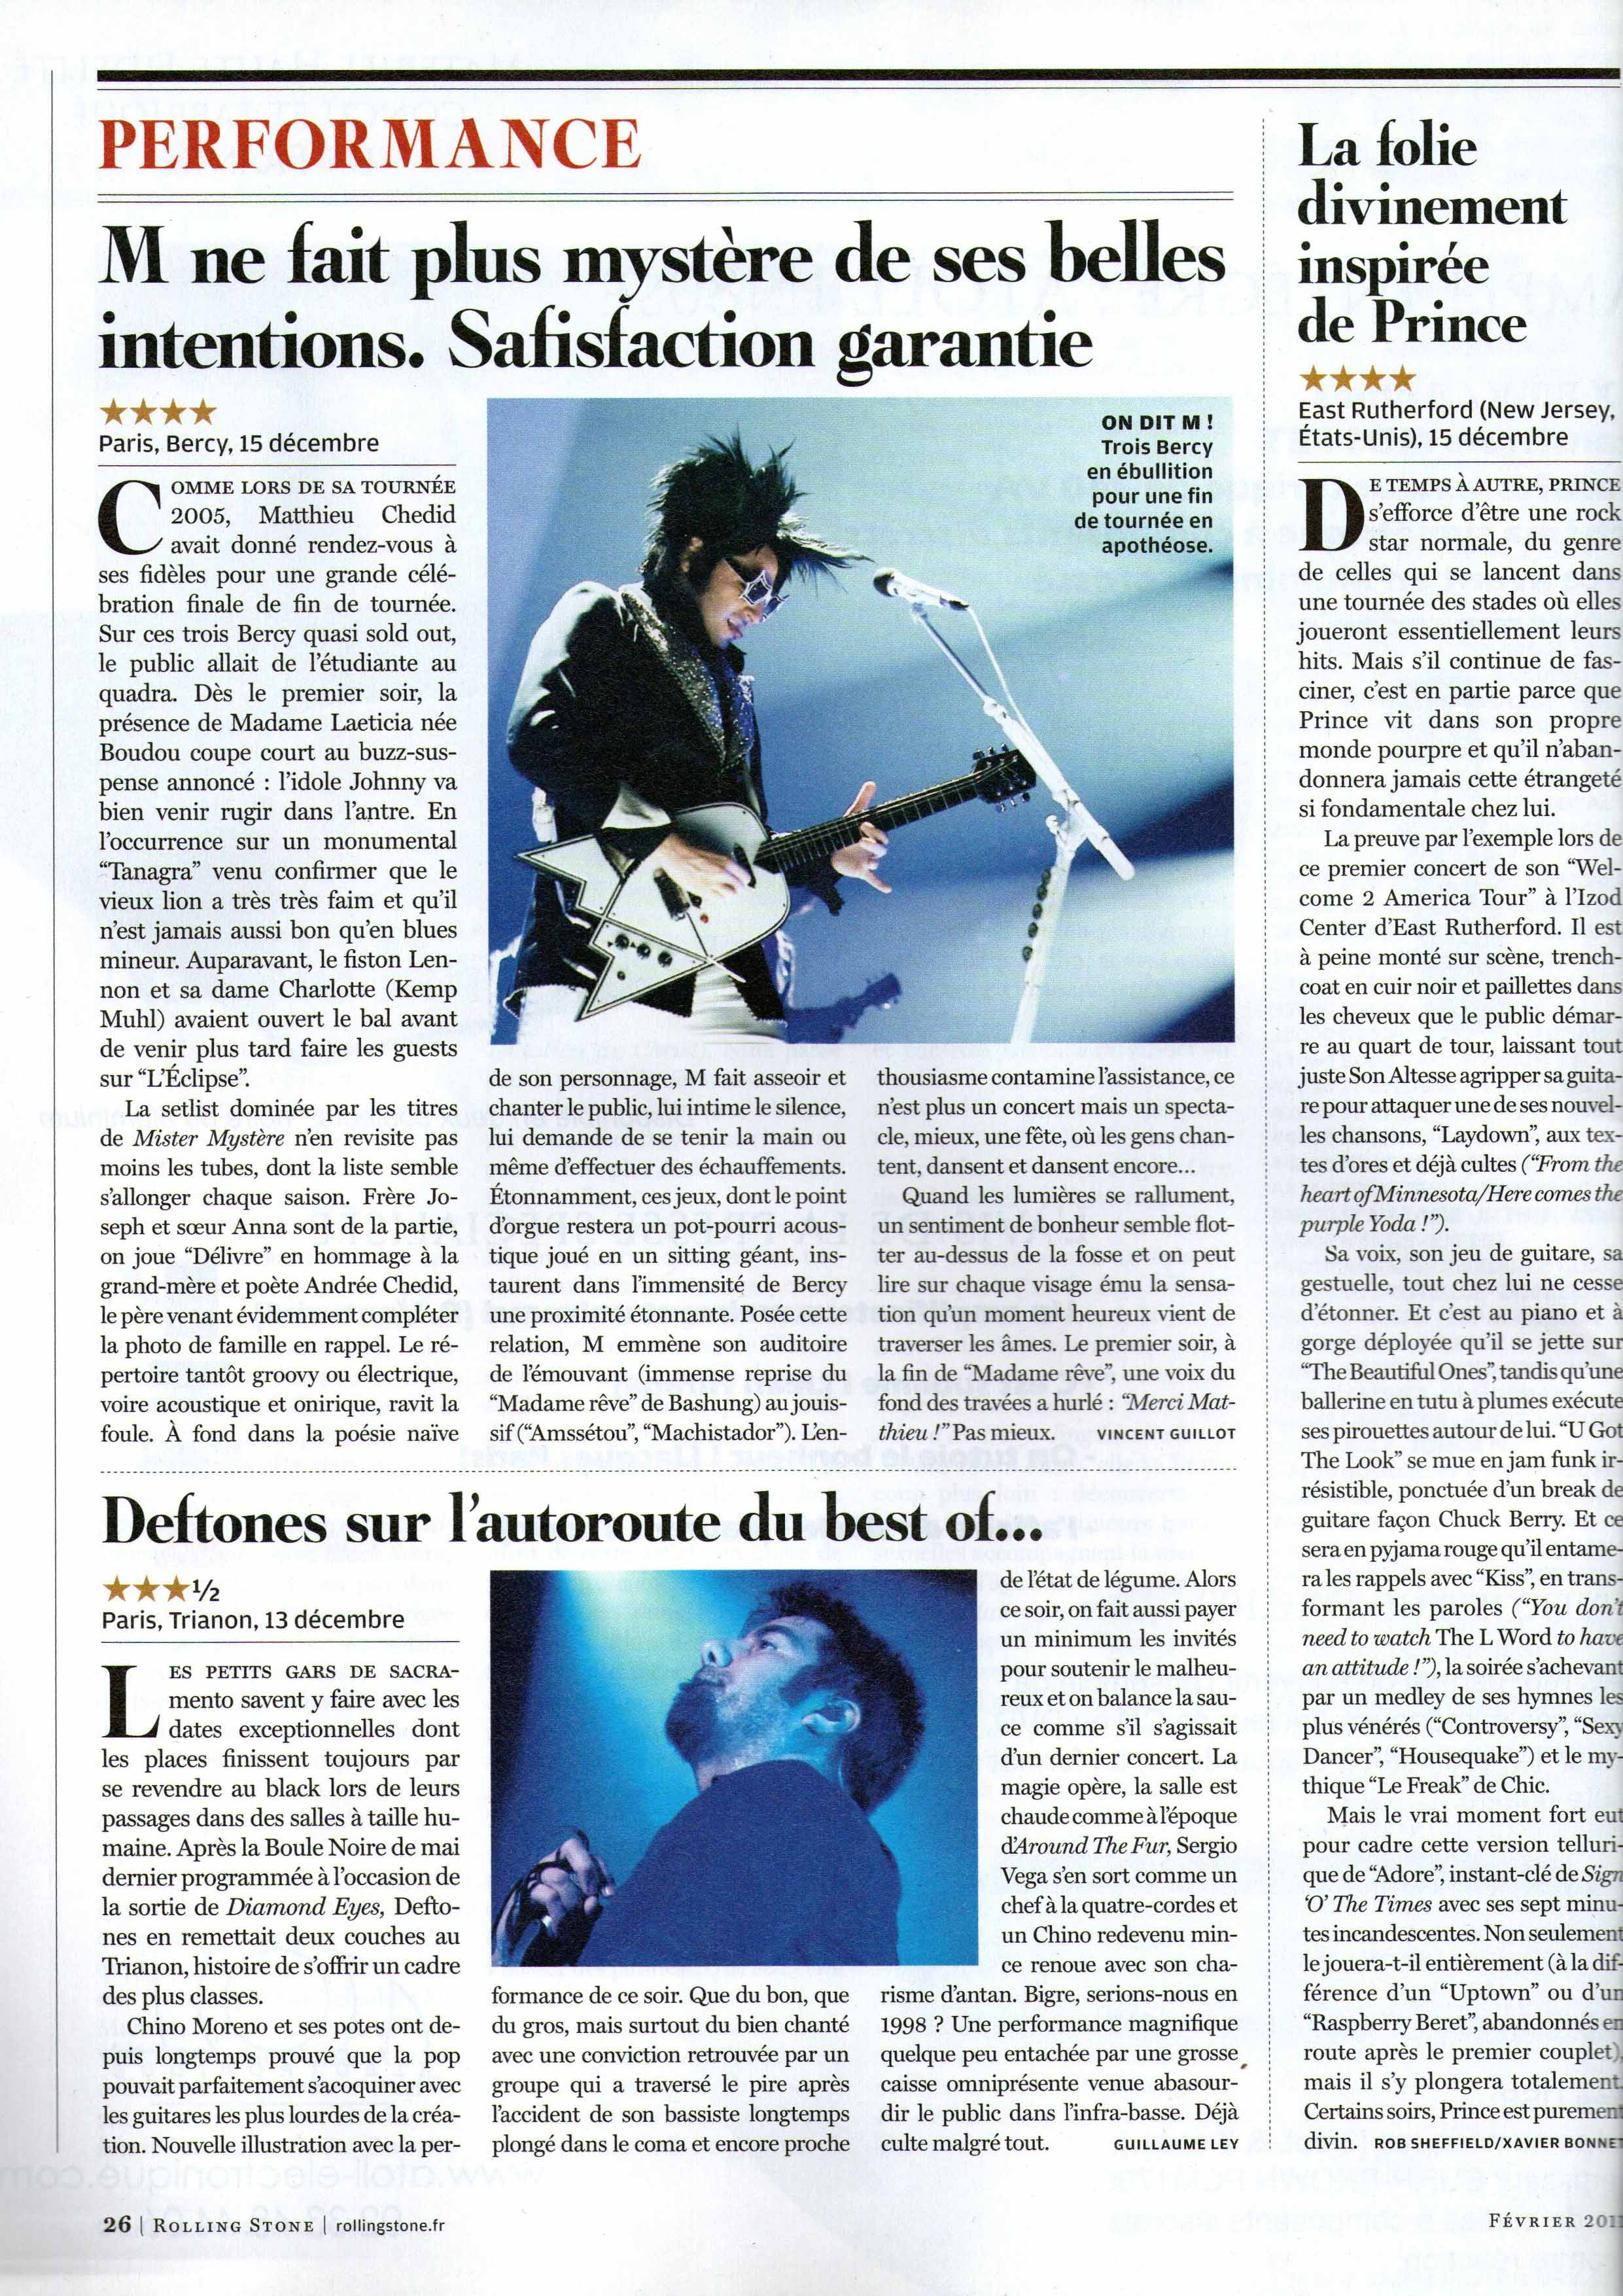 -M- and Deftones (Rolling Stone France)